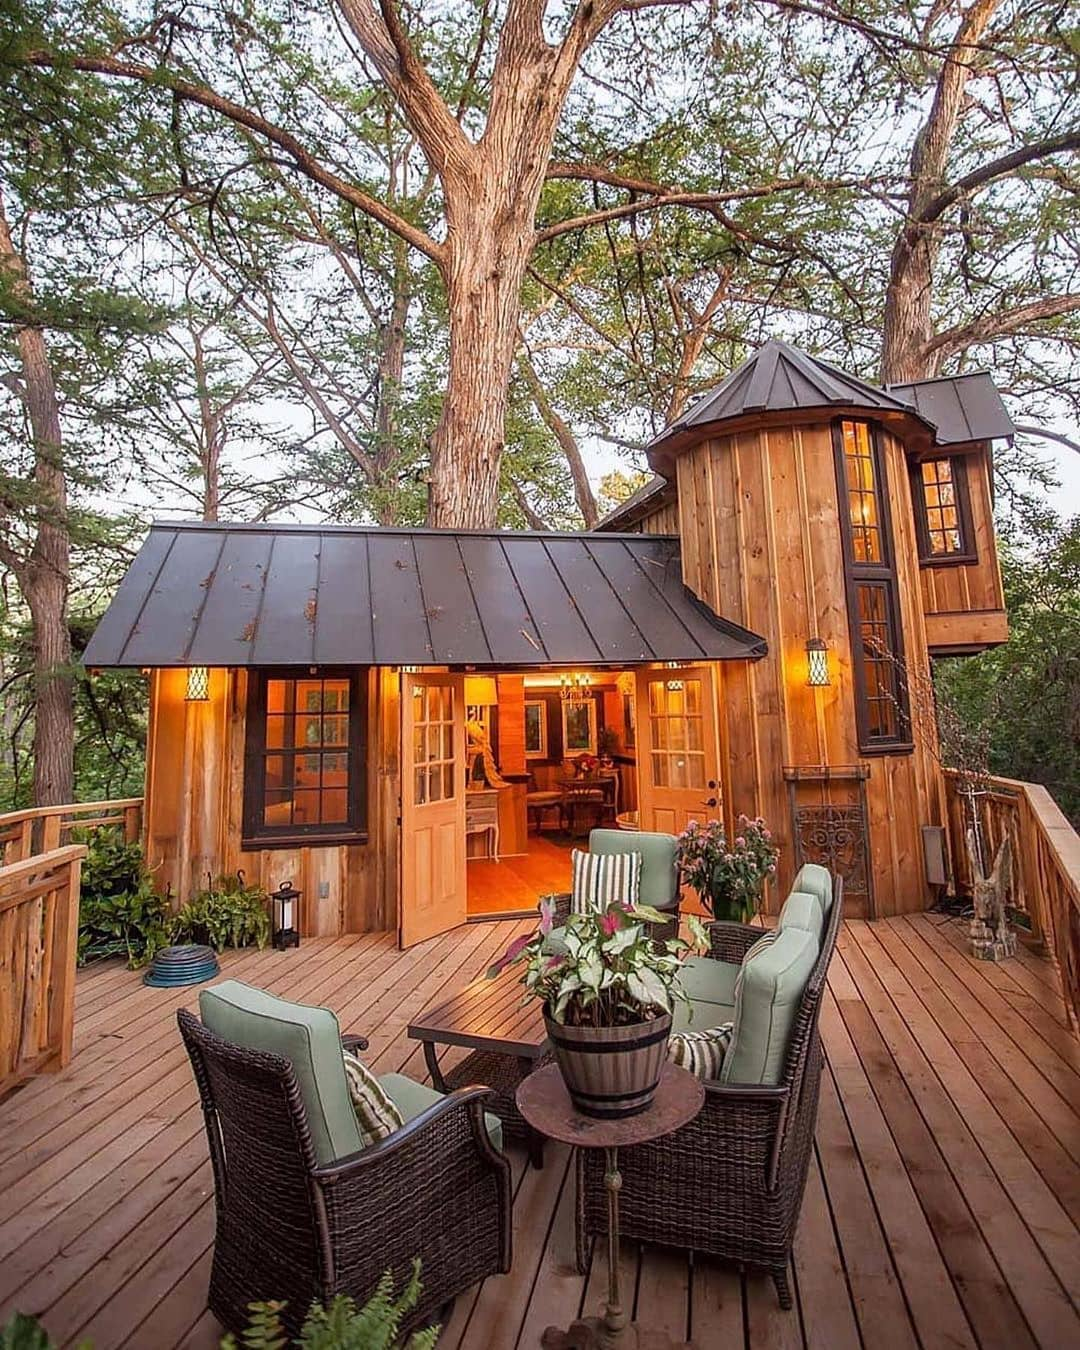 🏡 Access Cabin Plans And Tiny House Pla Customhomes - Architecture